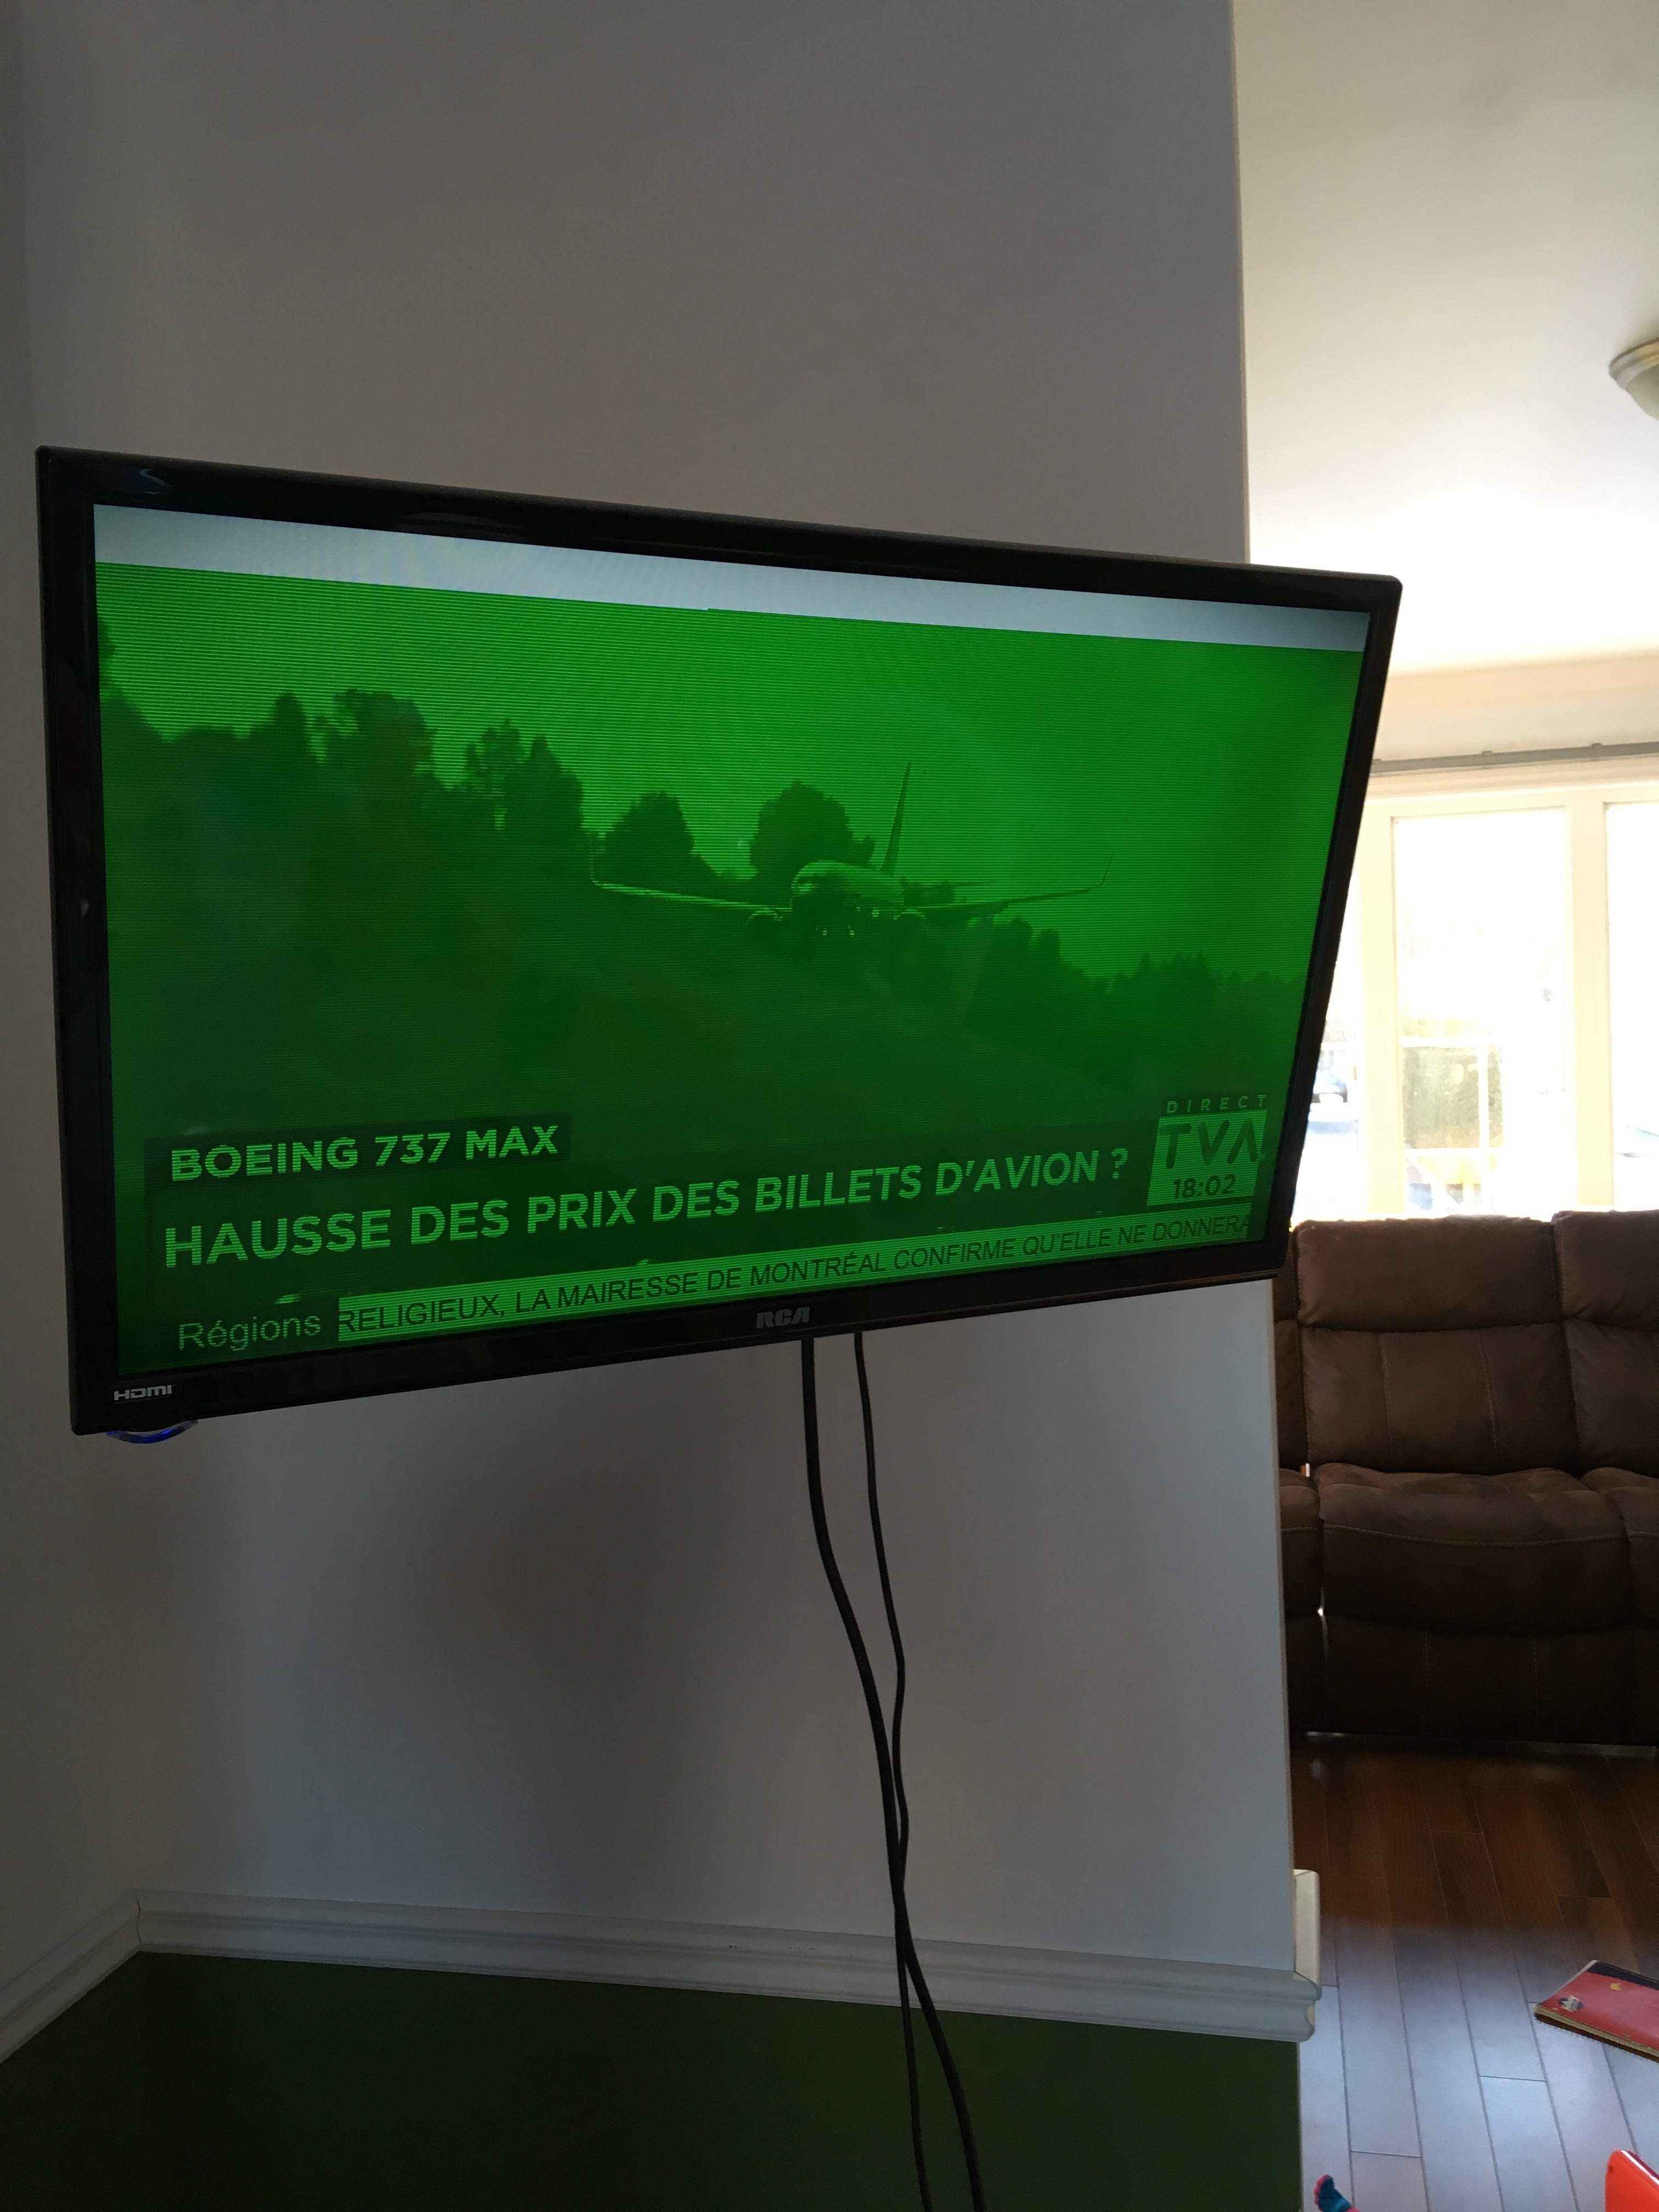 Green screen flashing while playback of live tv or recordings